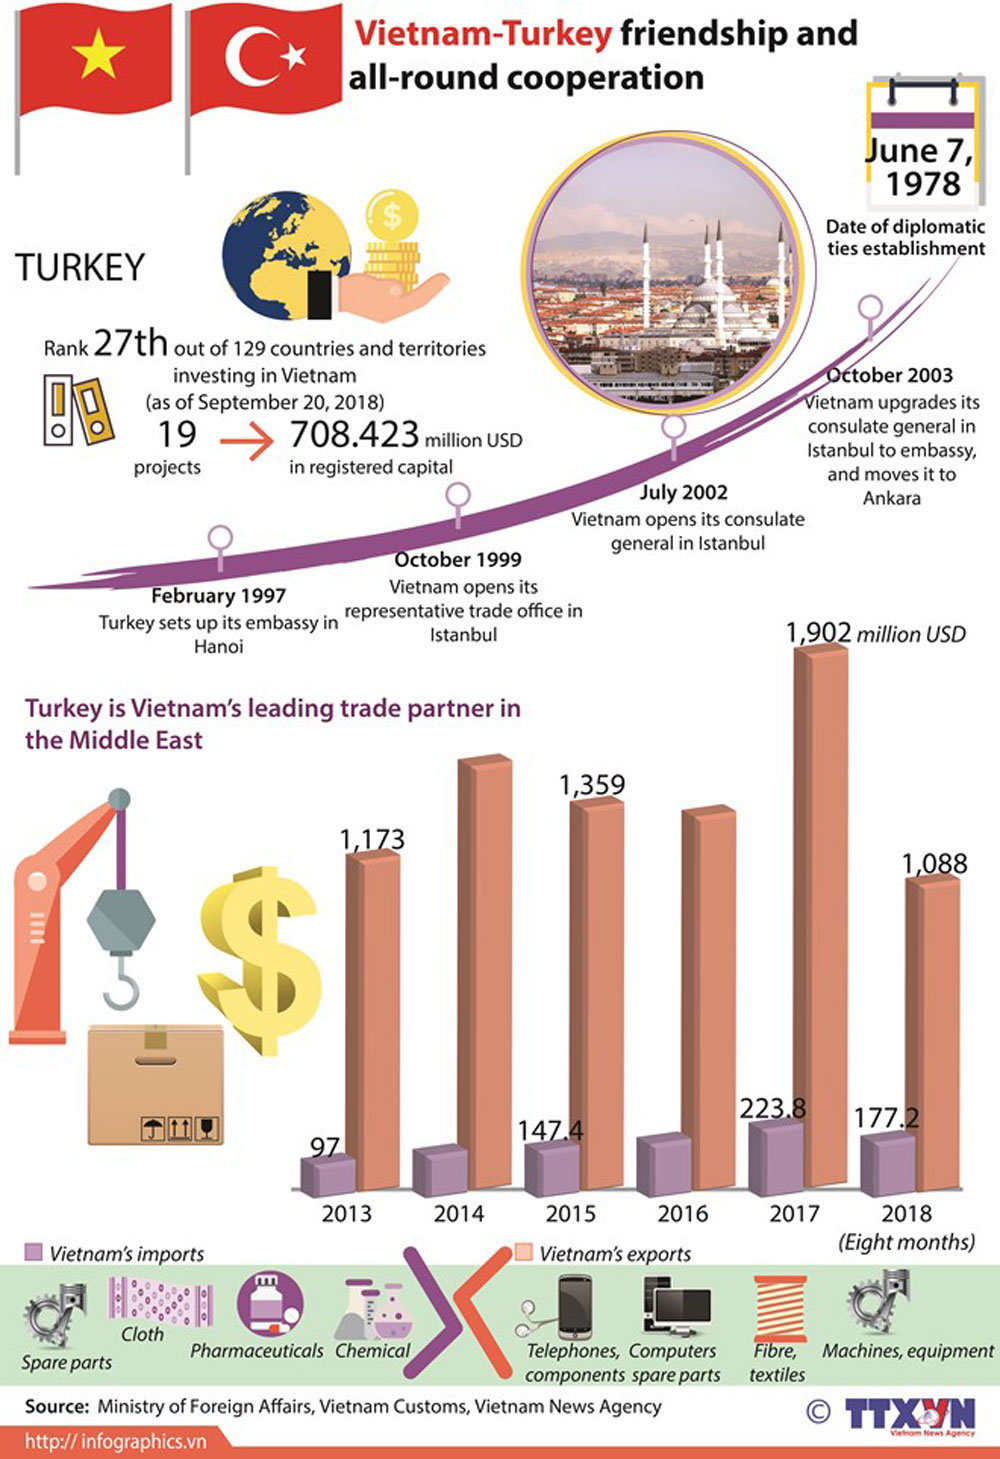 Vietnam-Turkey friendship, all-round cooperation, leading trade partner, countries and territories